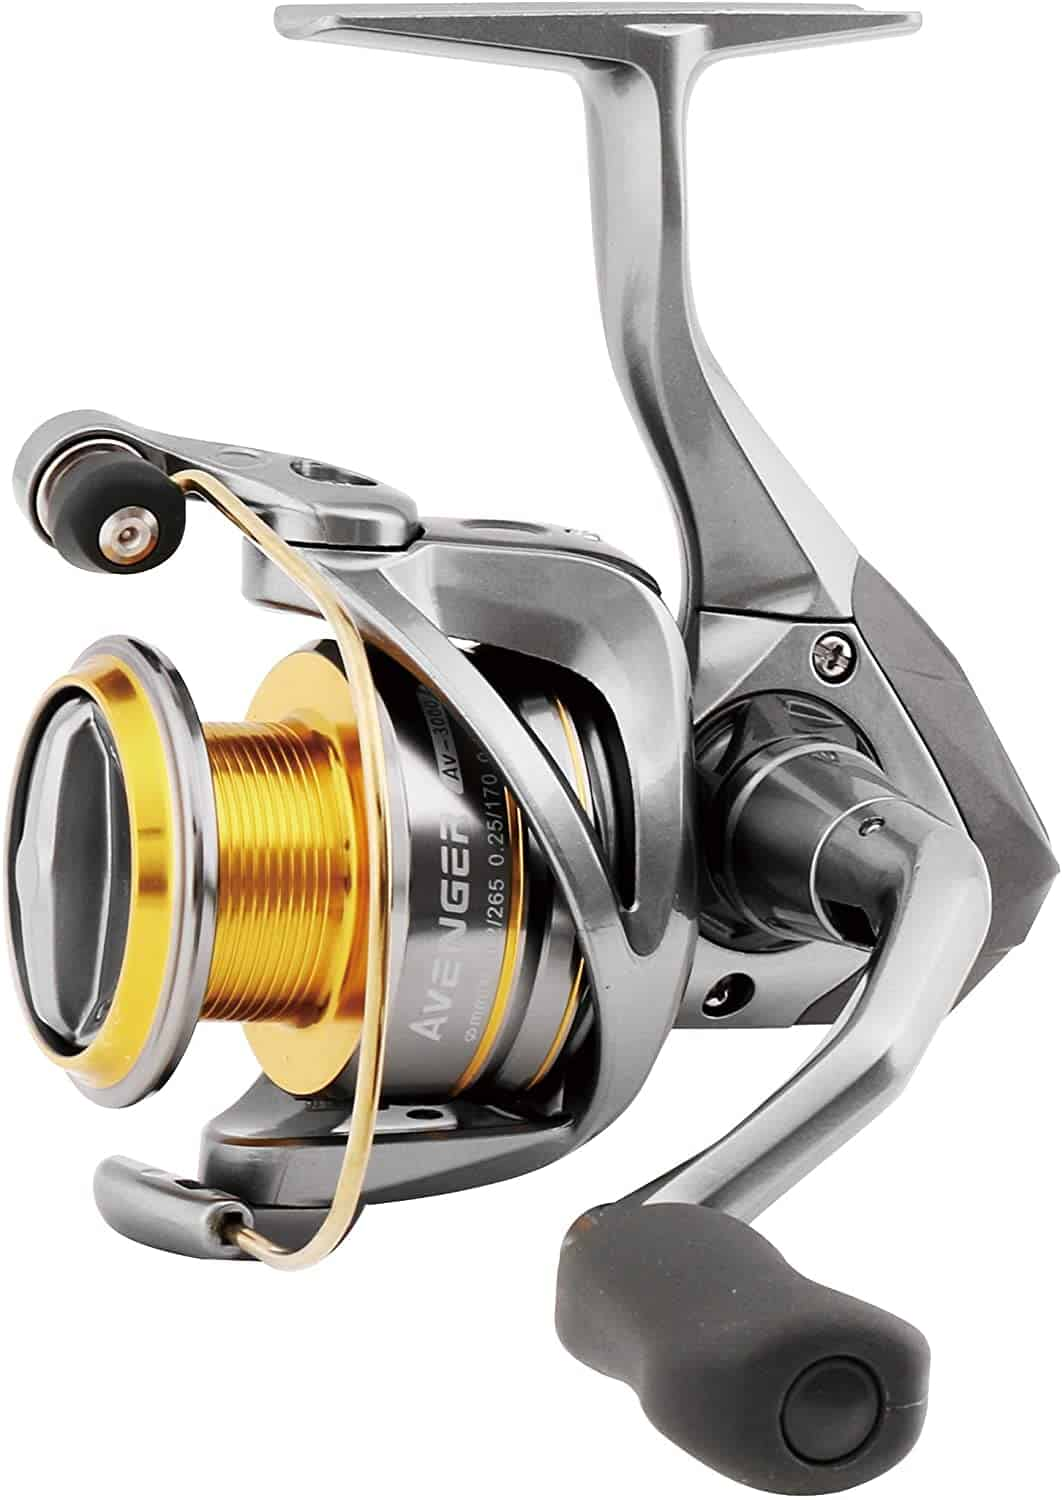 Avenger Spinning Reel by Okuma